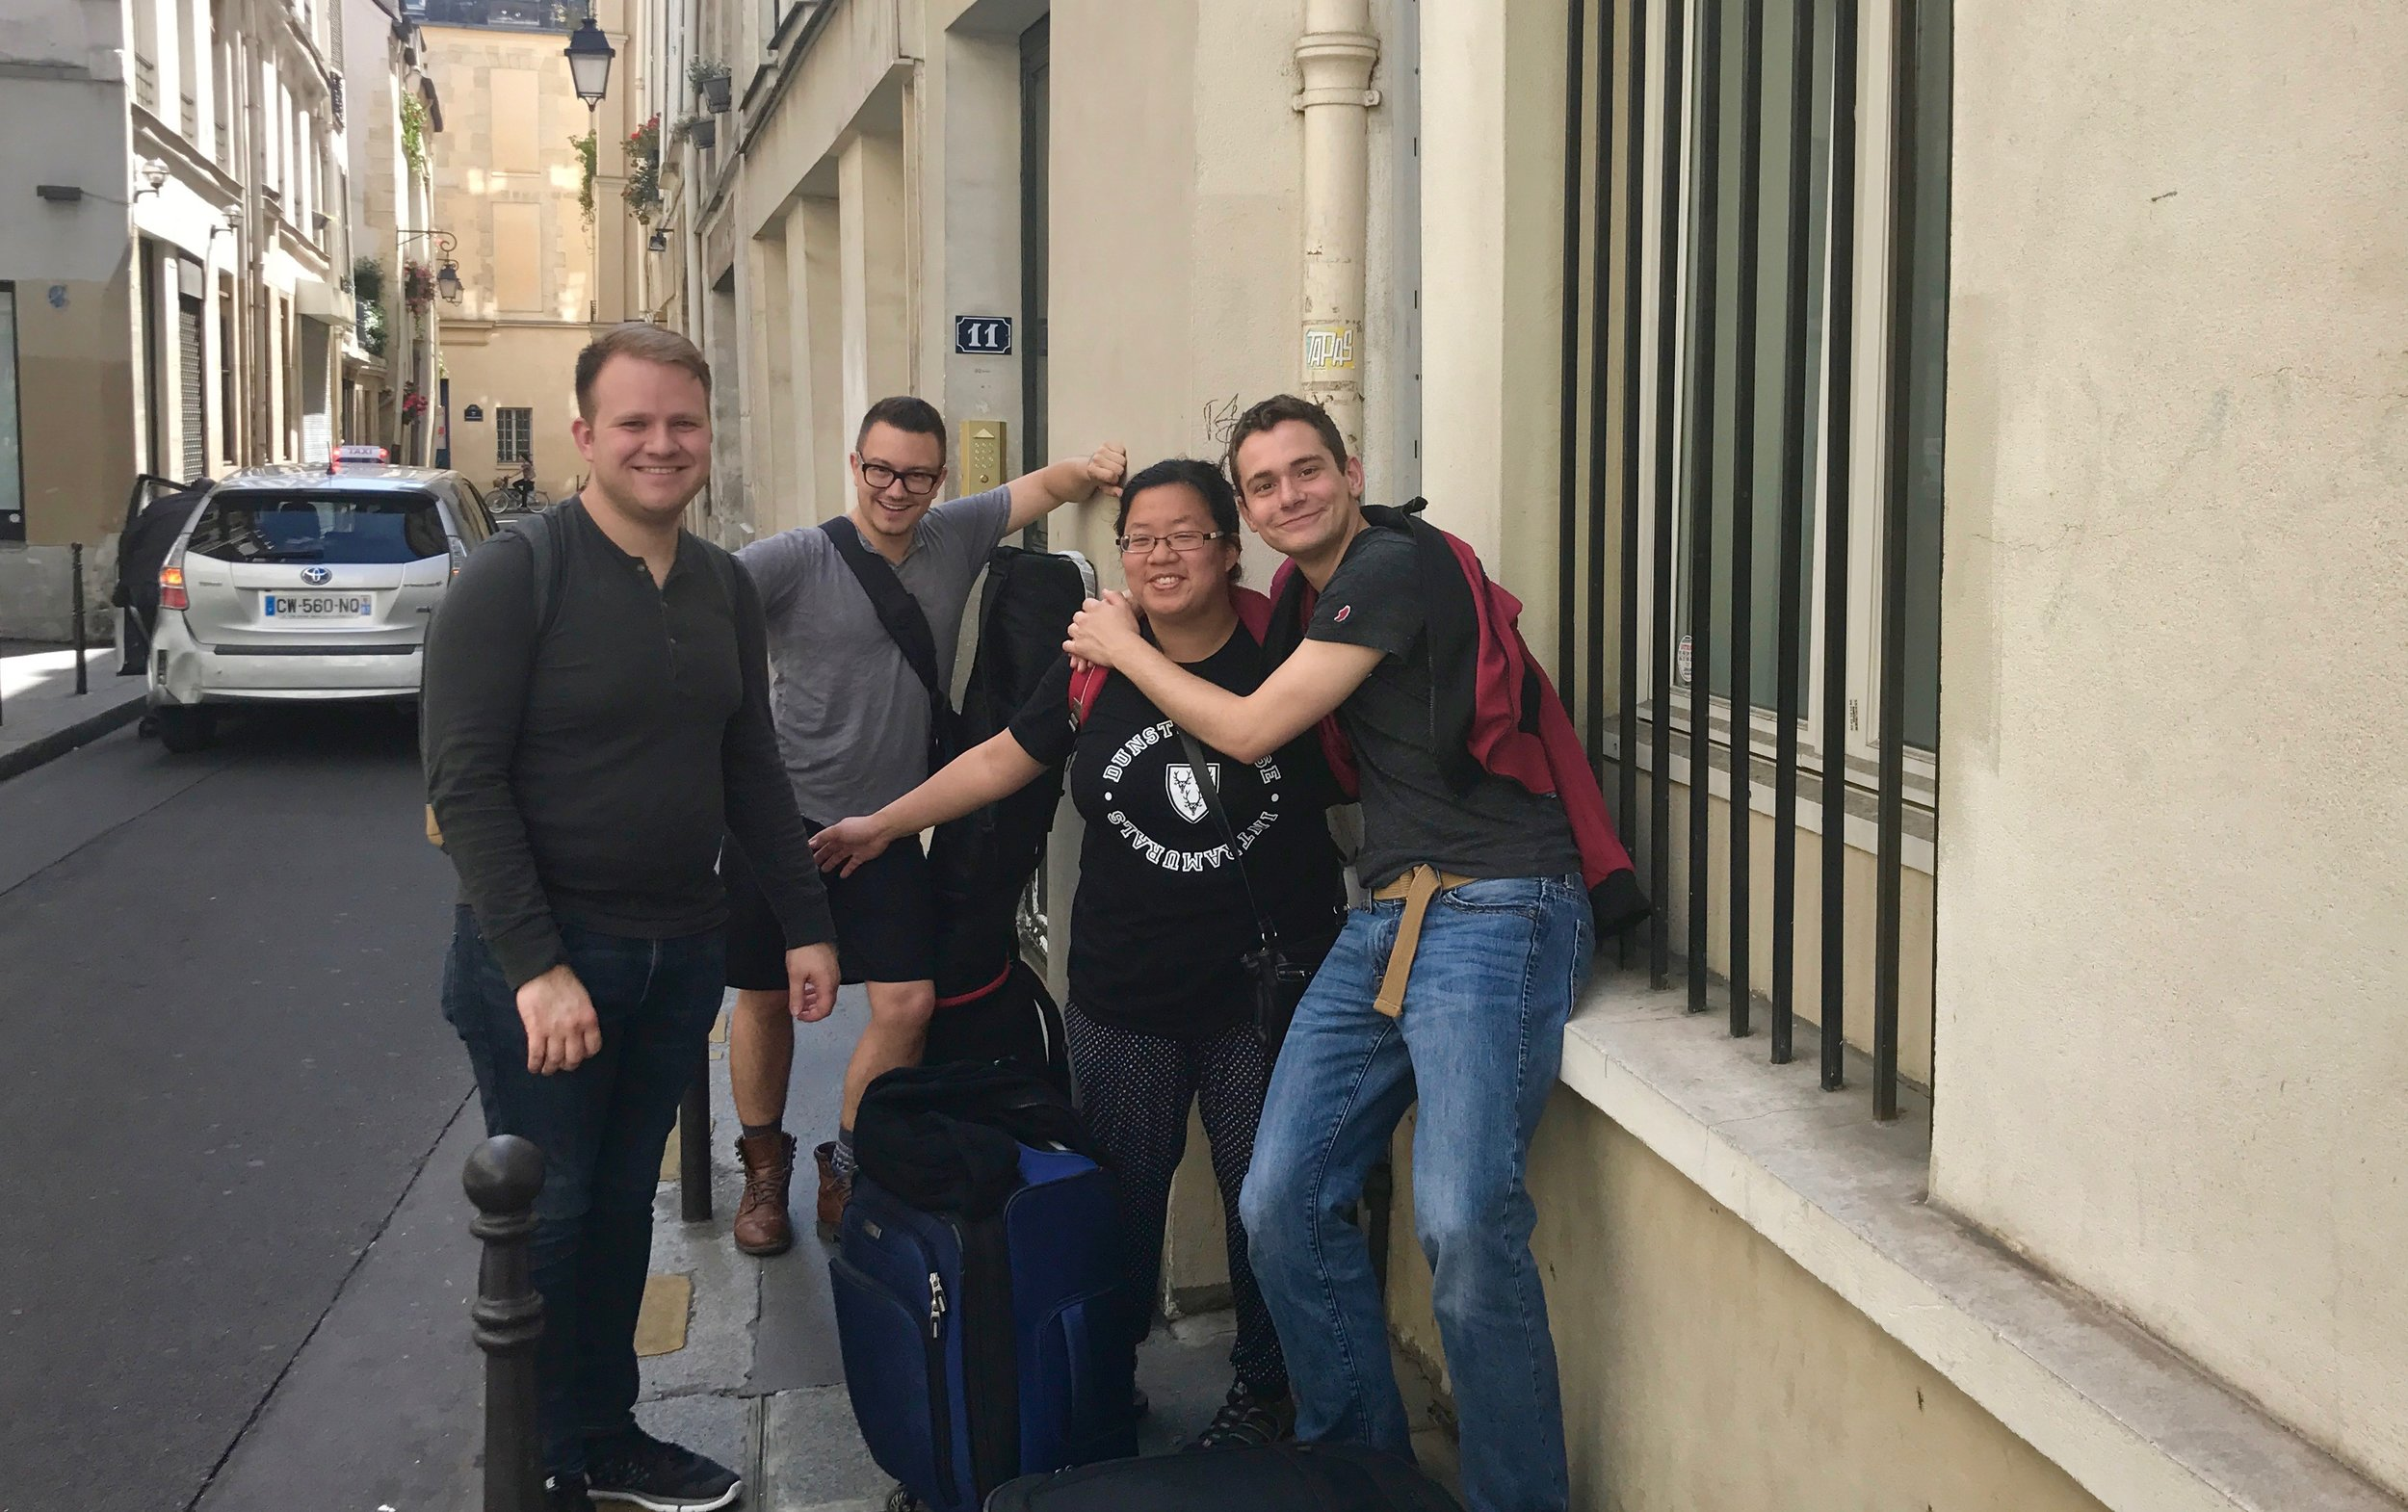 Billy, Corey, Jennifer, and David outside our Paris apartment.